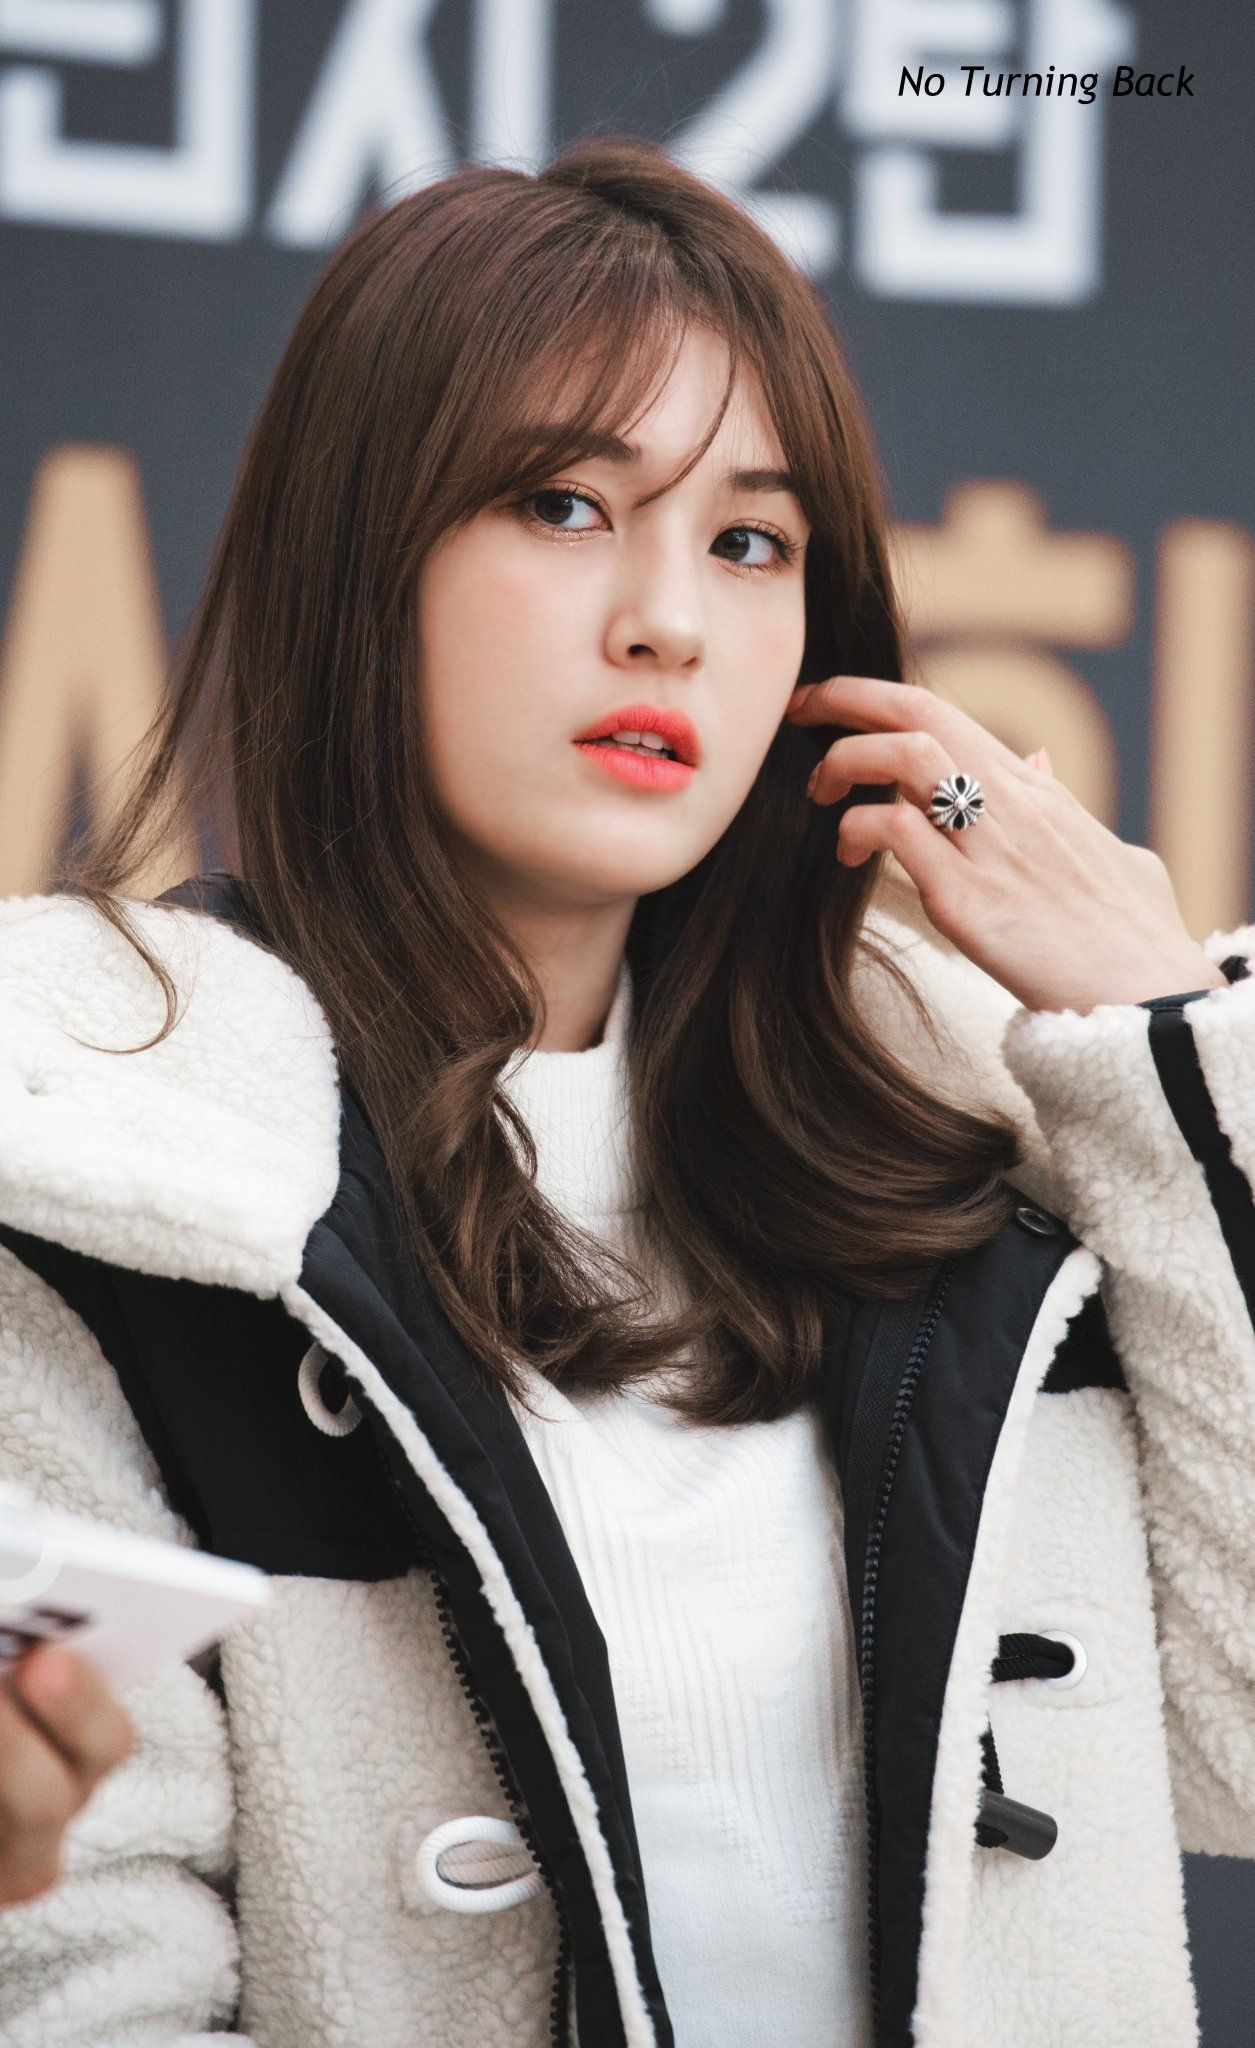 No Turning Back On Twitter Jeon Somi Airport Fashion Kpop Ulzzang Girl